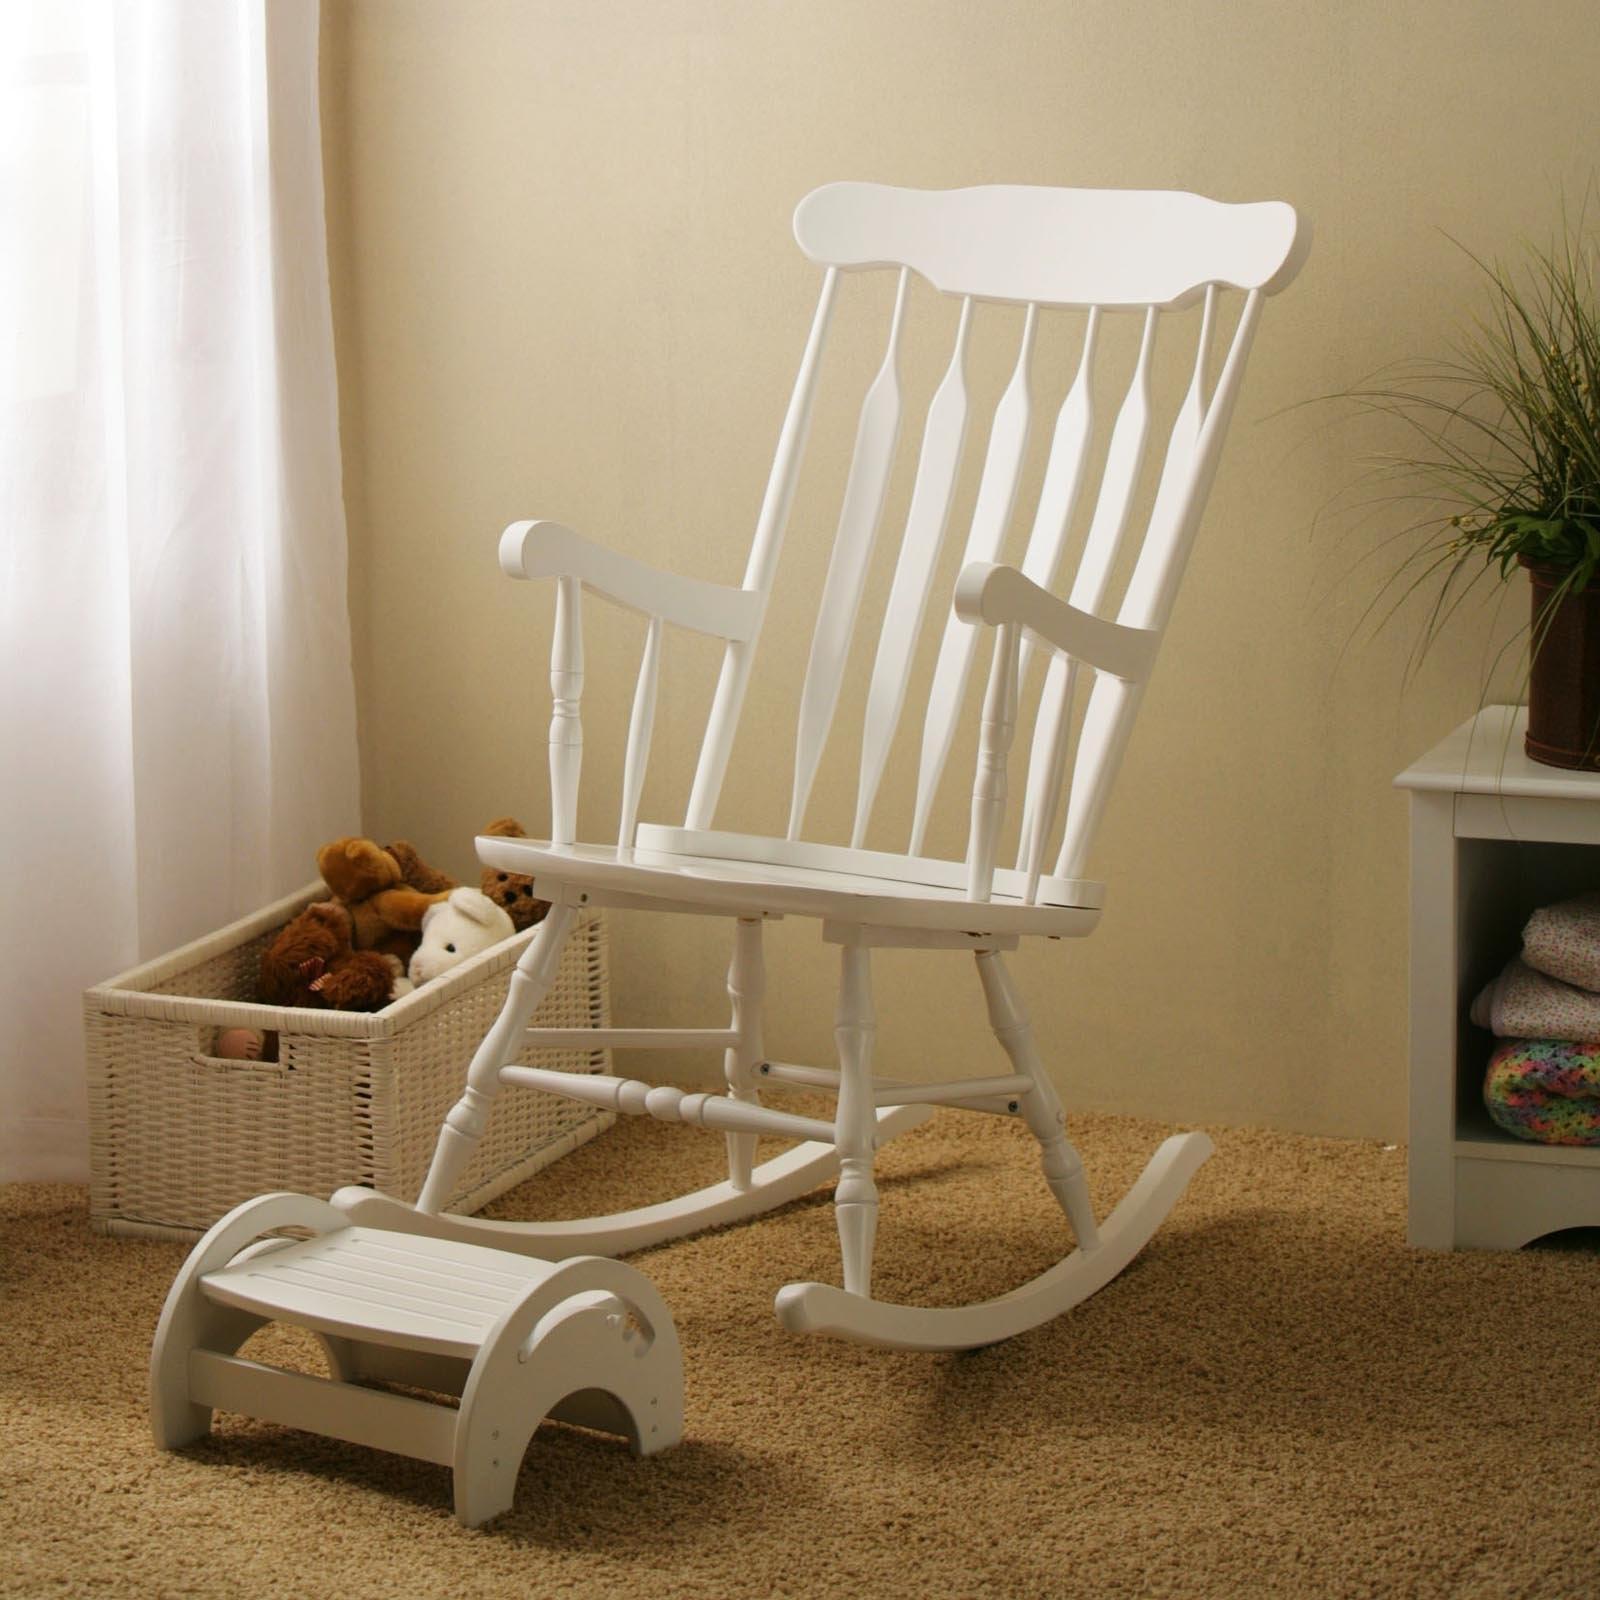 Recent Rocking Furniture – Kevinjohnsonformayor Throughout Rocking Chairs For Small Spaces (View 5 of 15)